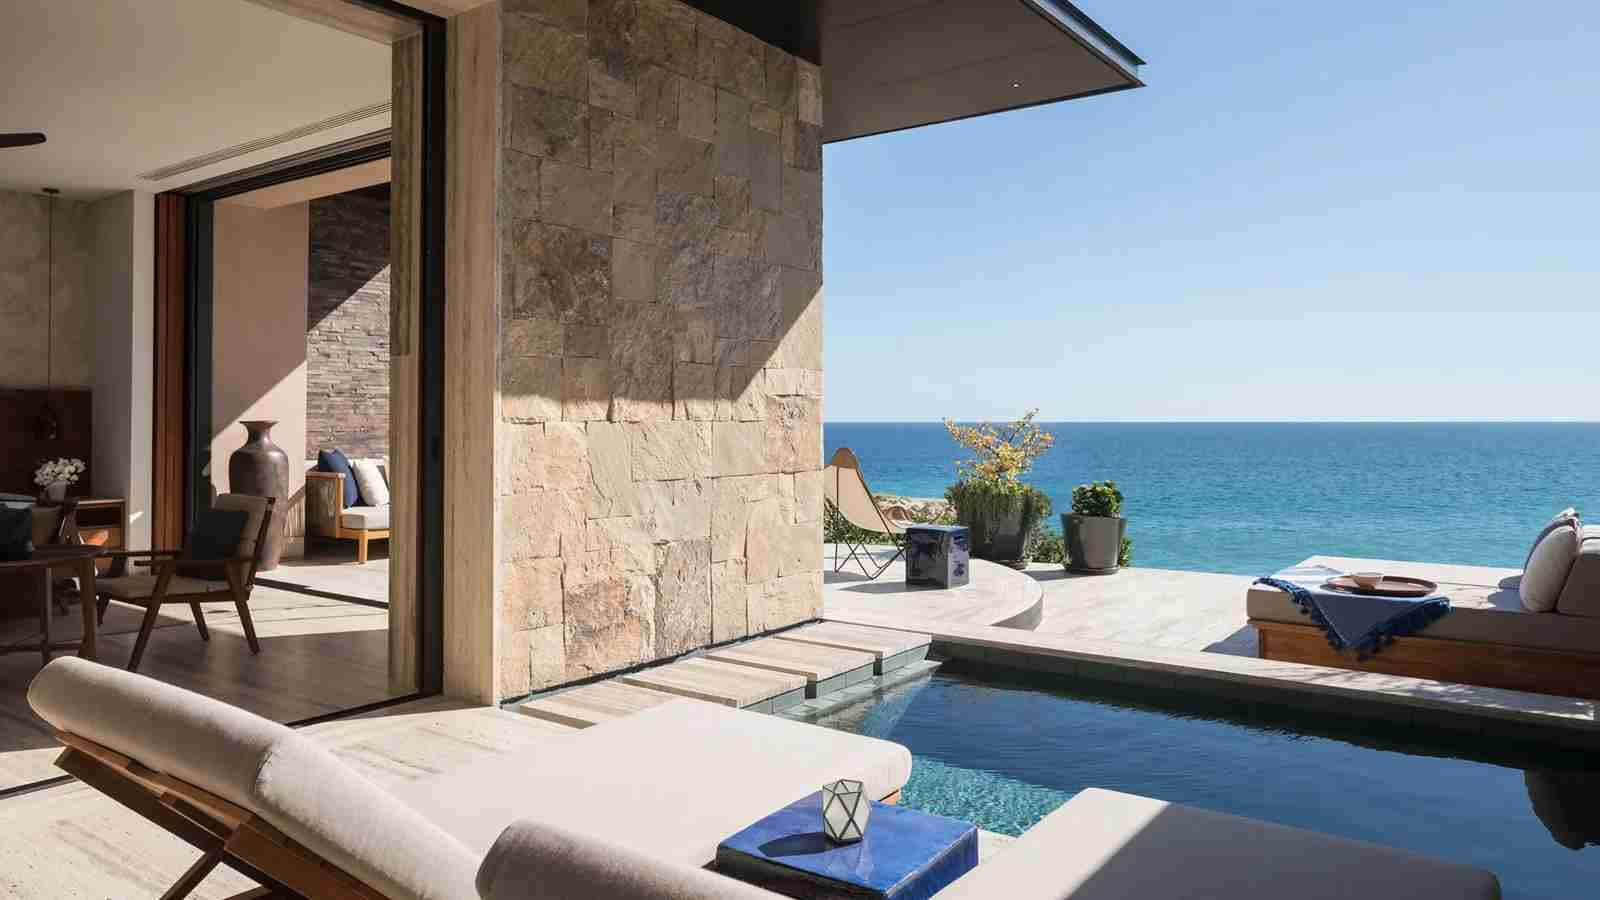 An ocean-view pool room at Zadún, a Ritz-Carlton Reserve, in Los Cabos, Mexico. (Photo courtesy of Zadún)